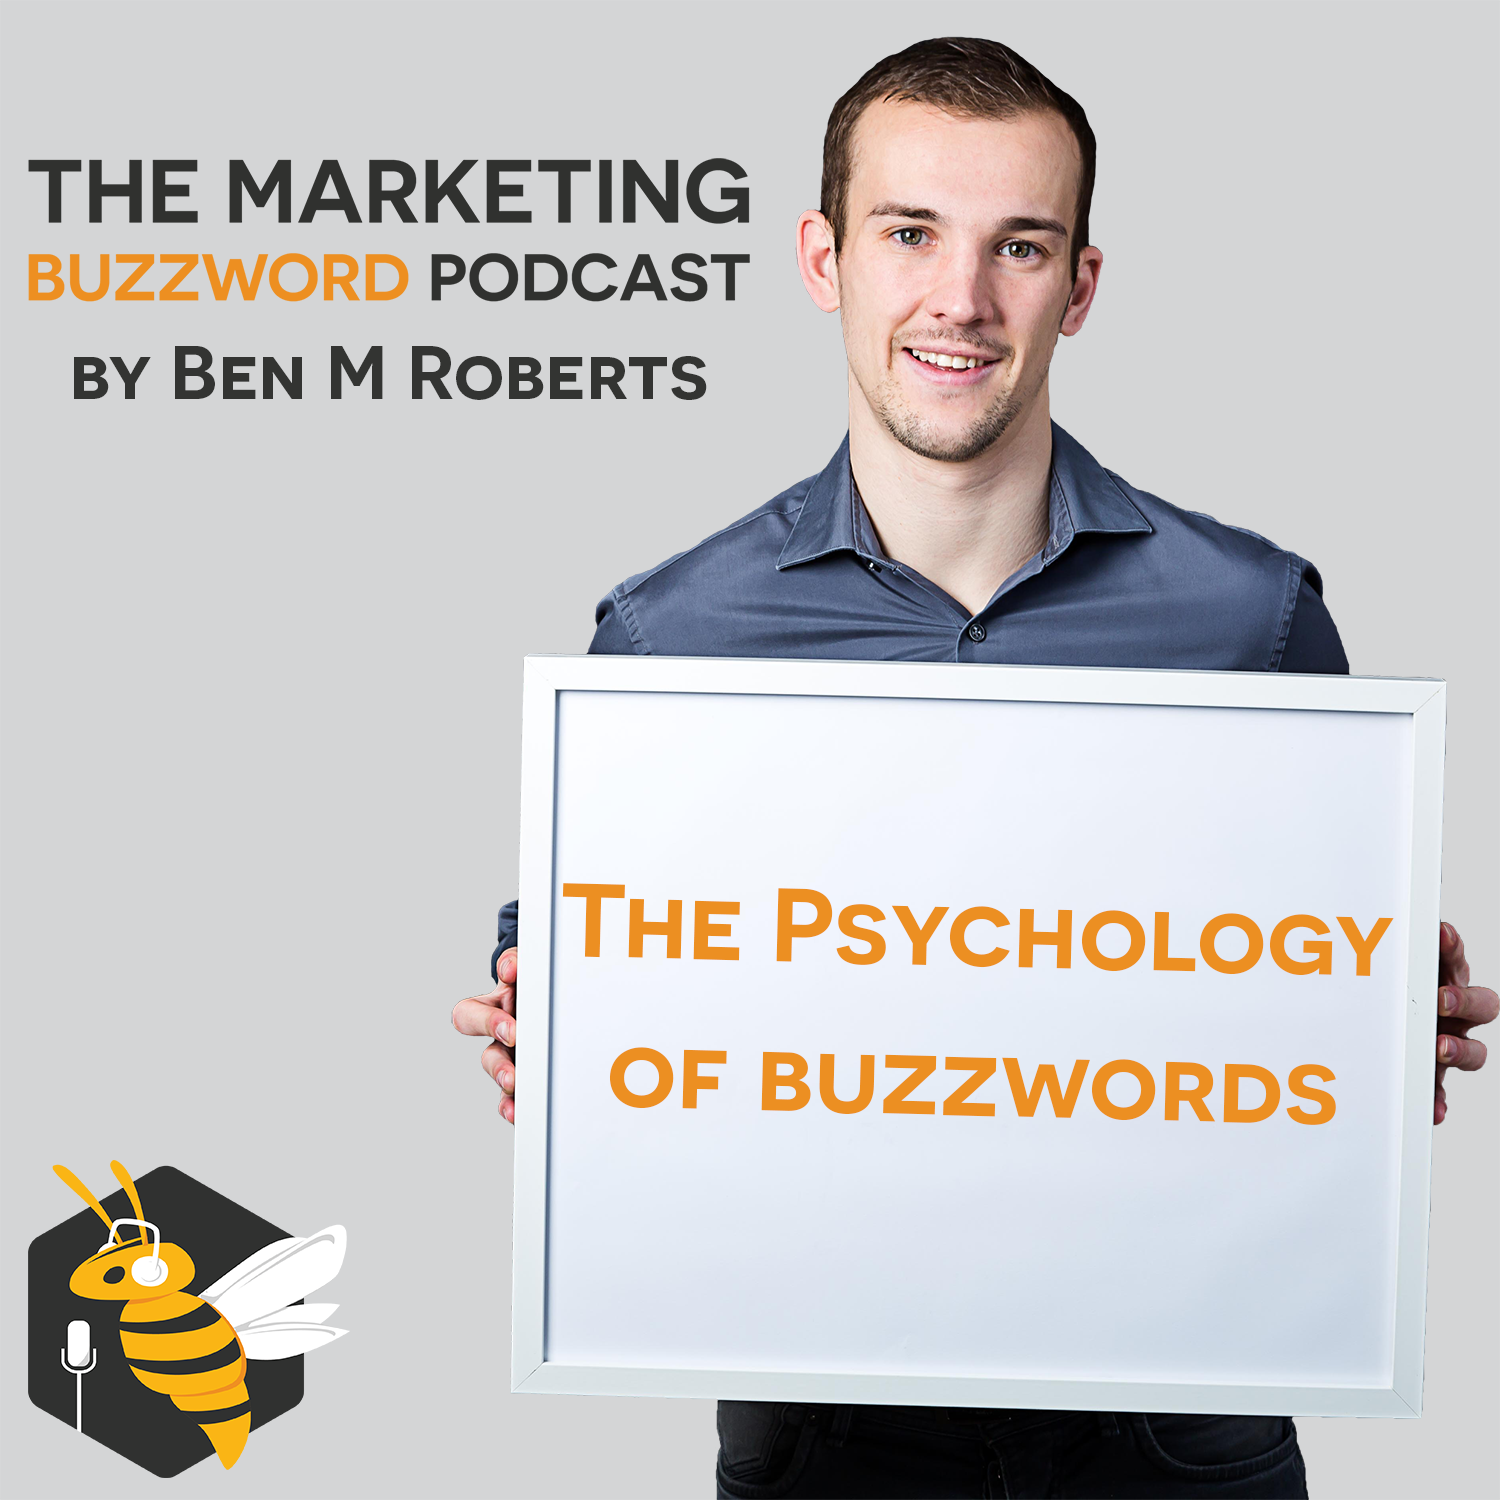 The Psychology of Buzzwords - Why do we use them? Why do some words thrive whilst others languish? What is social transmission and how does it affect buzzwords?